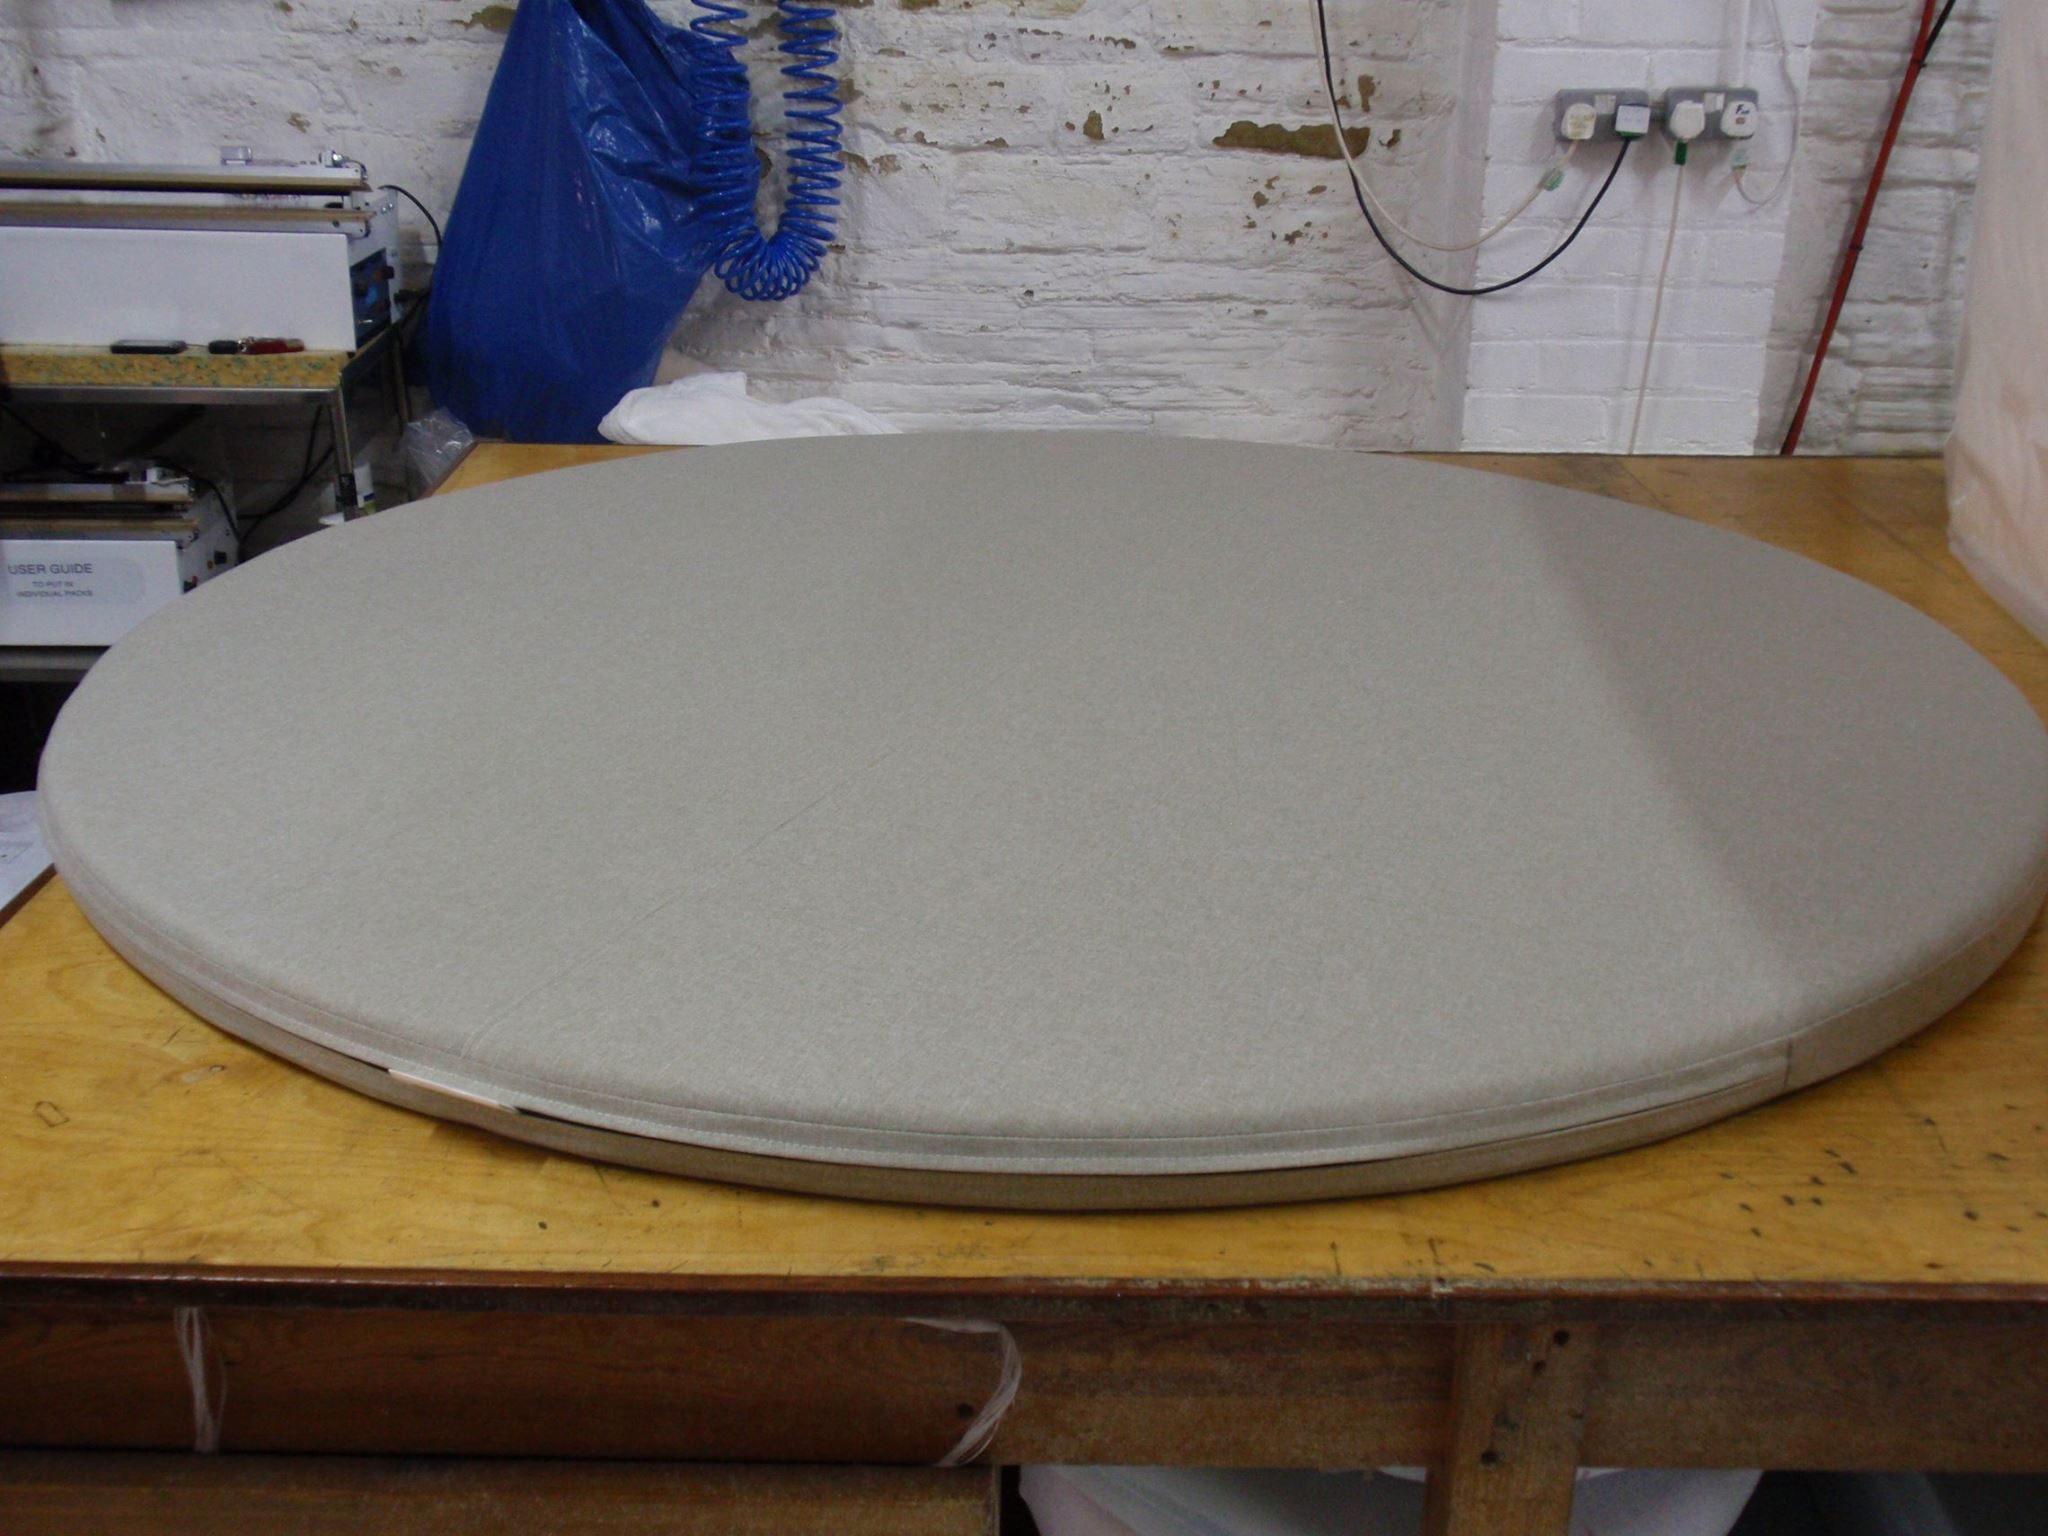 Lovely Large Round Foam Cushion In FFC Outdoor Fabric In Ecru Colour. Ideal For  Garden Seating